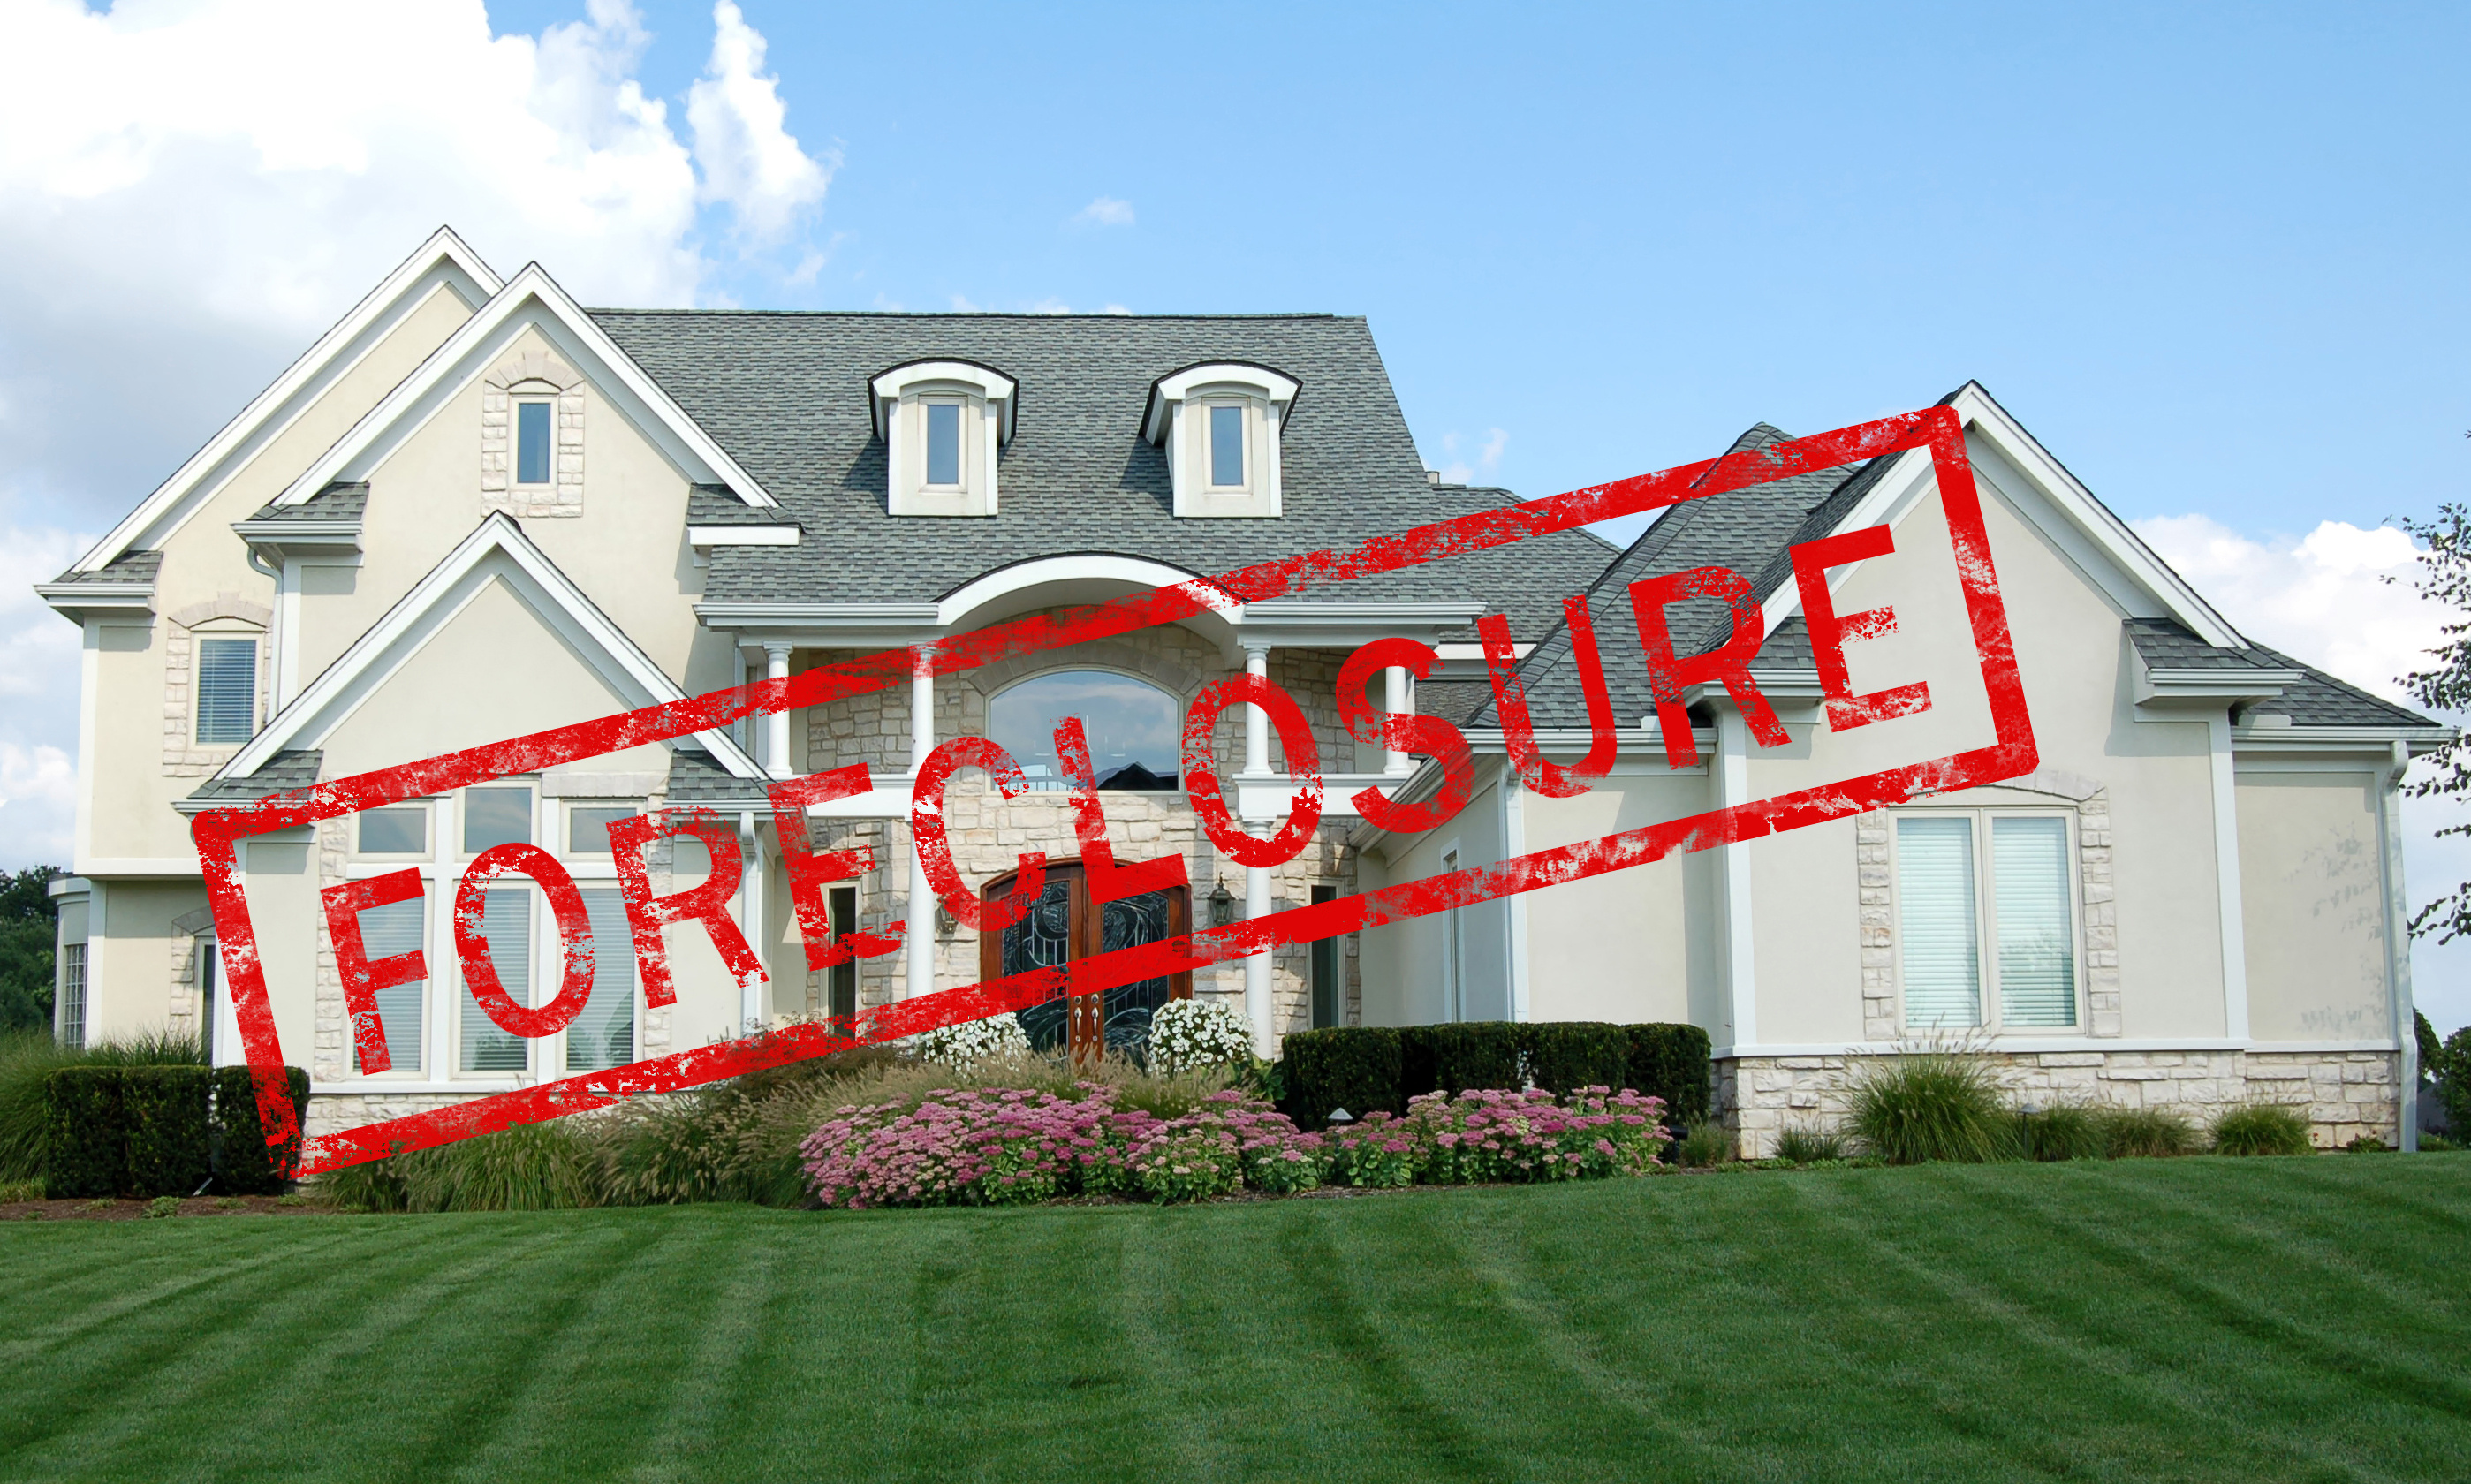 Call Timeline Appraisal Services, LLC when you need valuations of Maricopa foreclosures